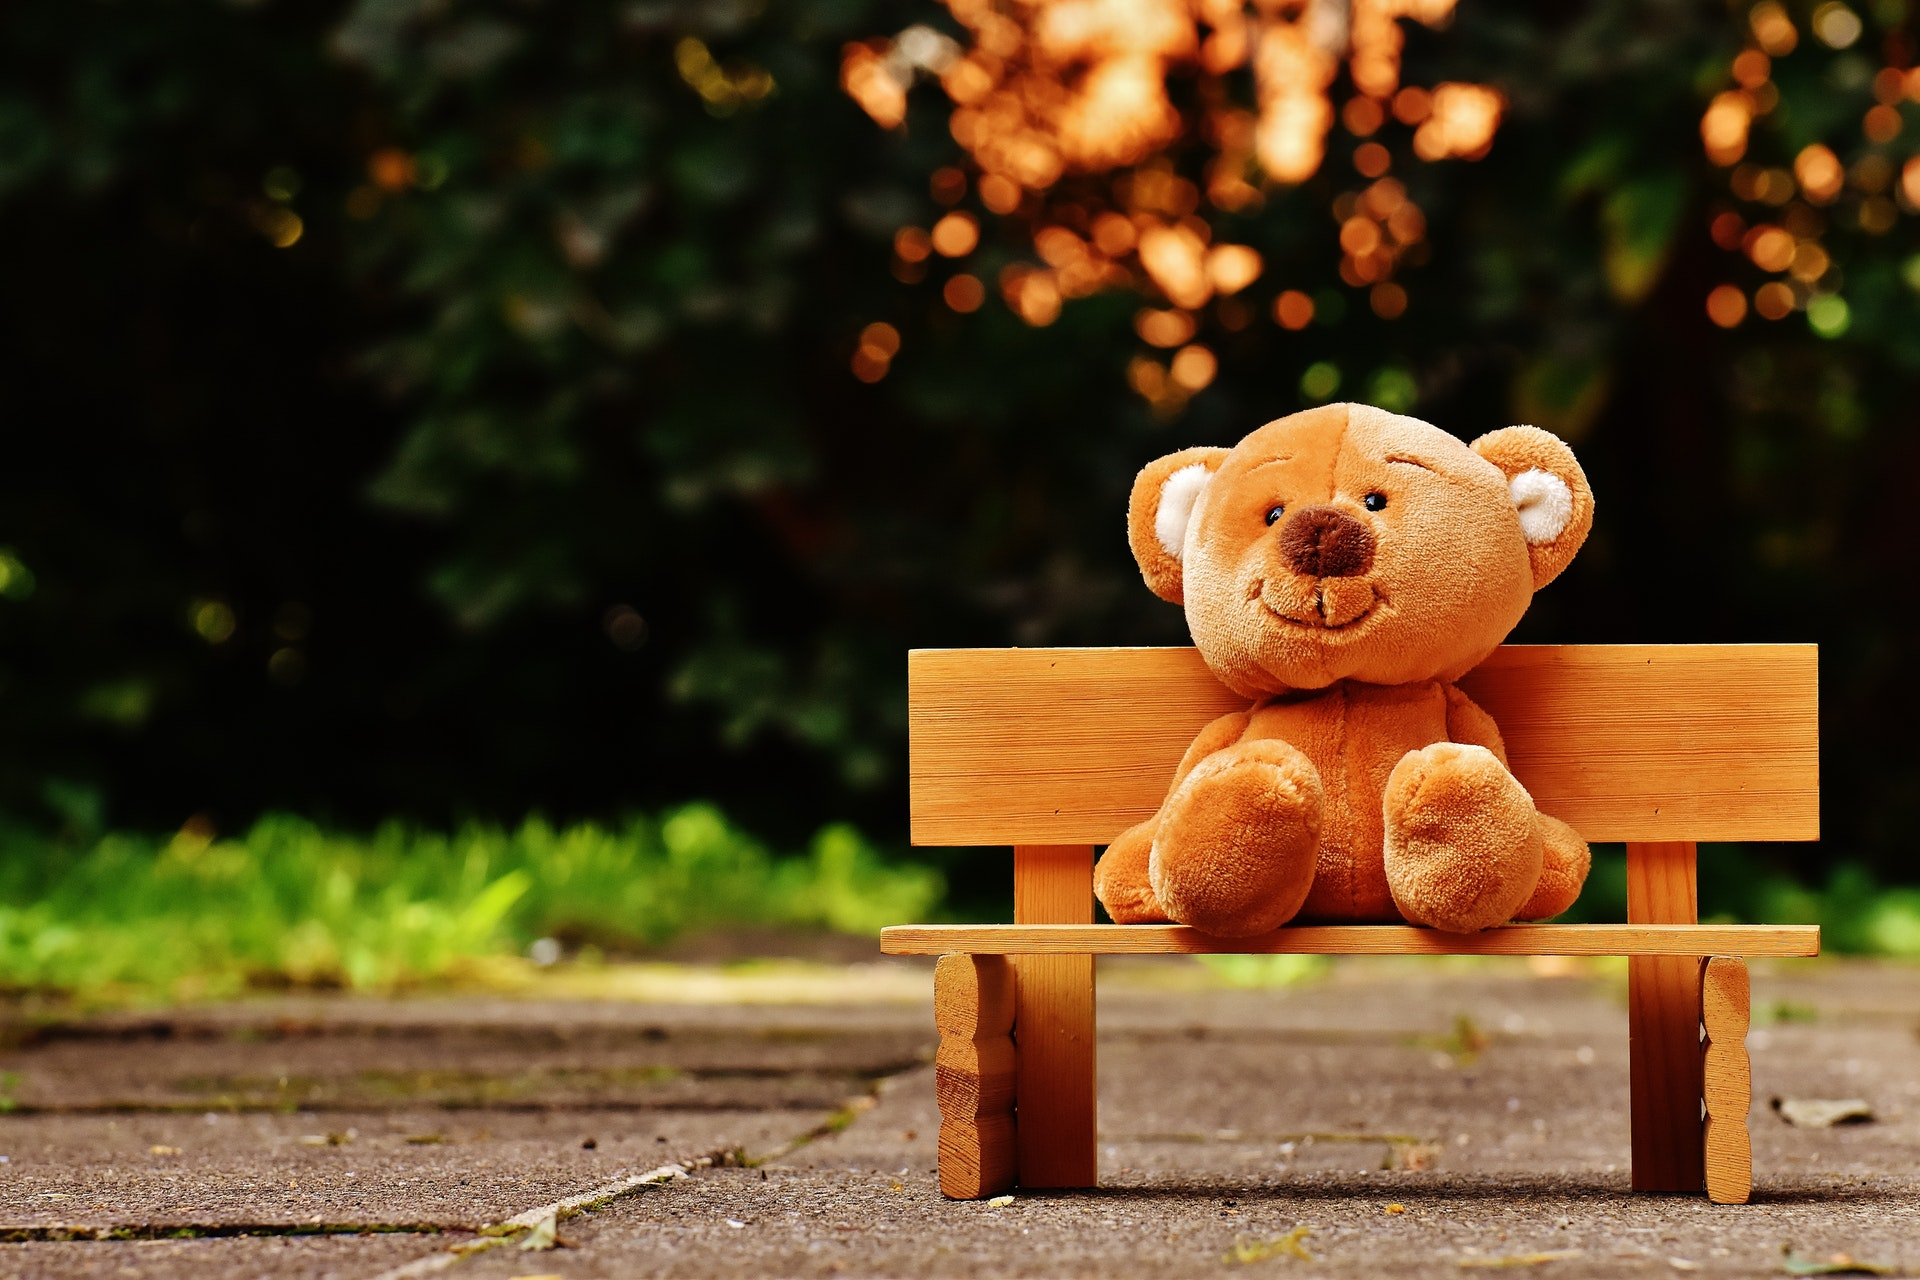 an image of a teddy bear on a bench